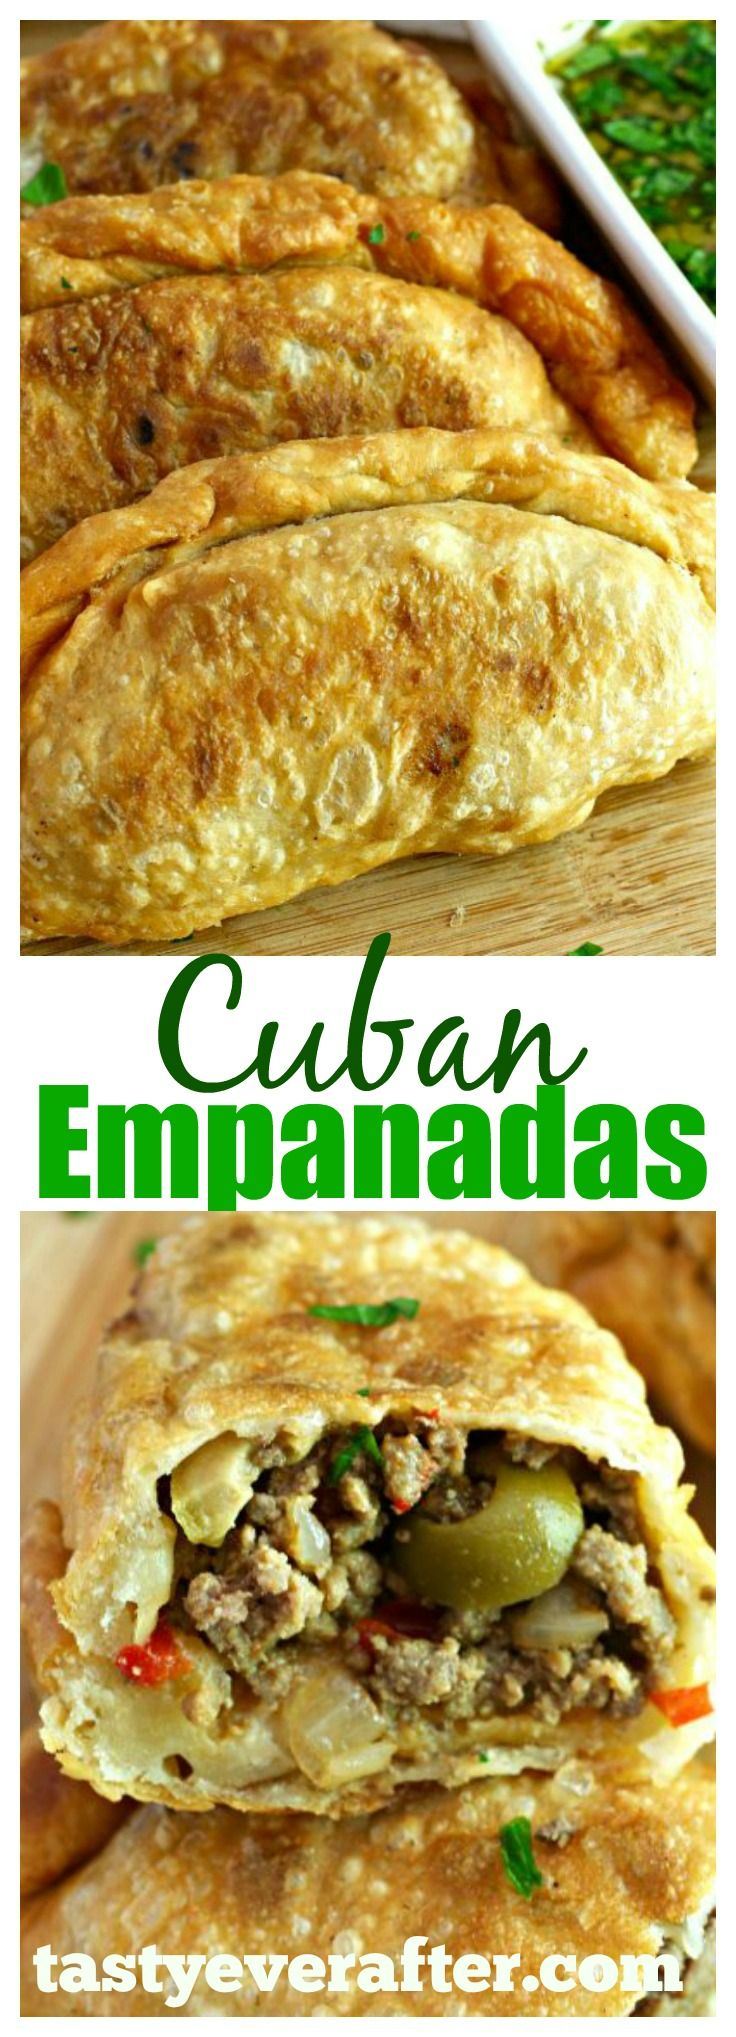 This is the BEST Cuban Empanadas recipe ever! So good with chimichurri sauce!